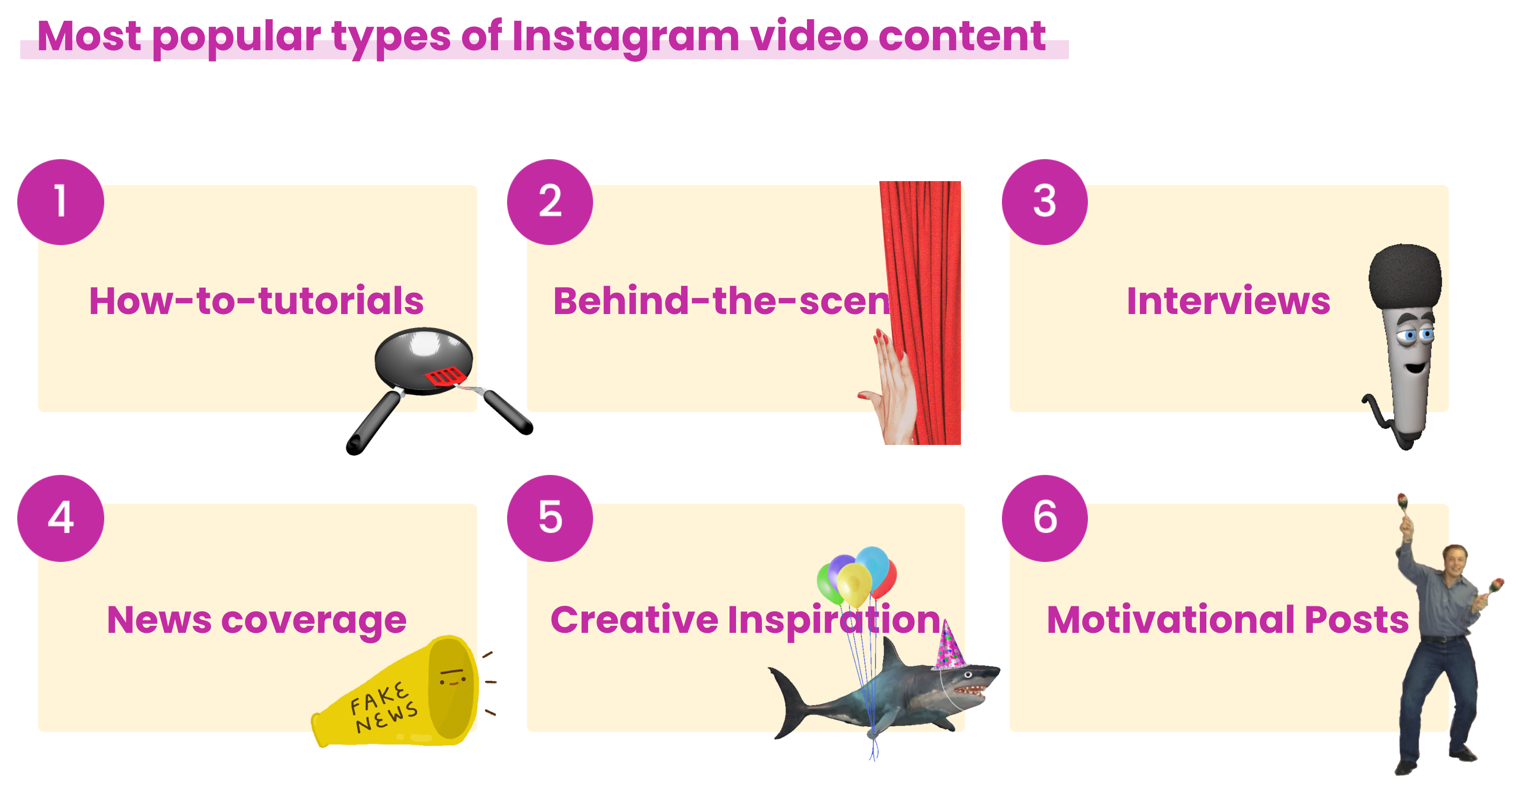 Popular types of Instagram video content.